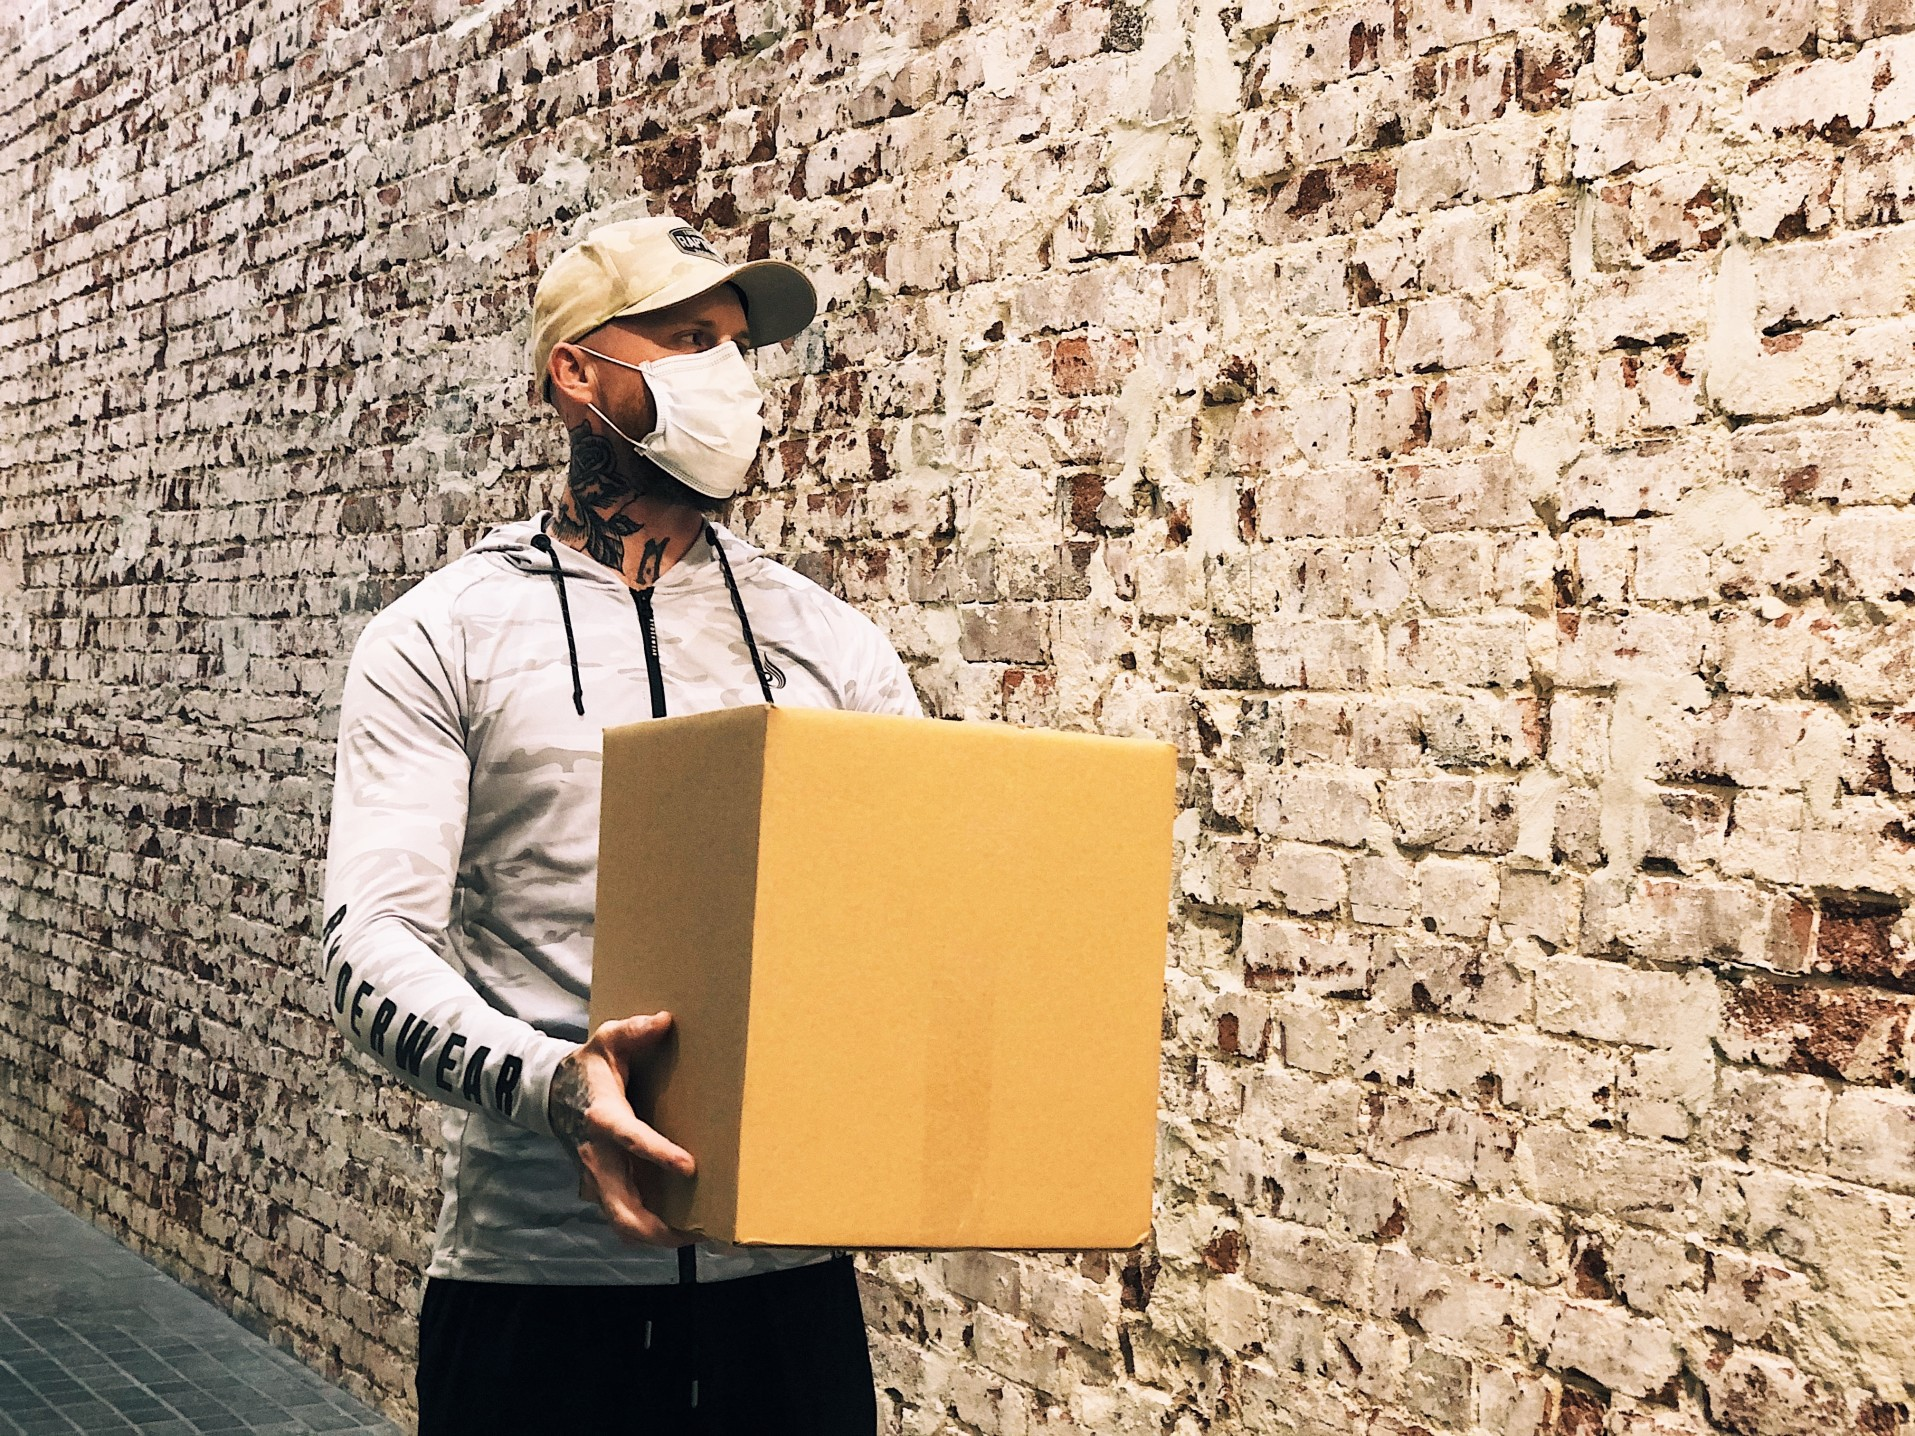 Questions Answered on Boxes packing and moving supplies